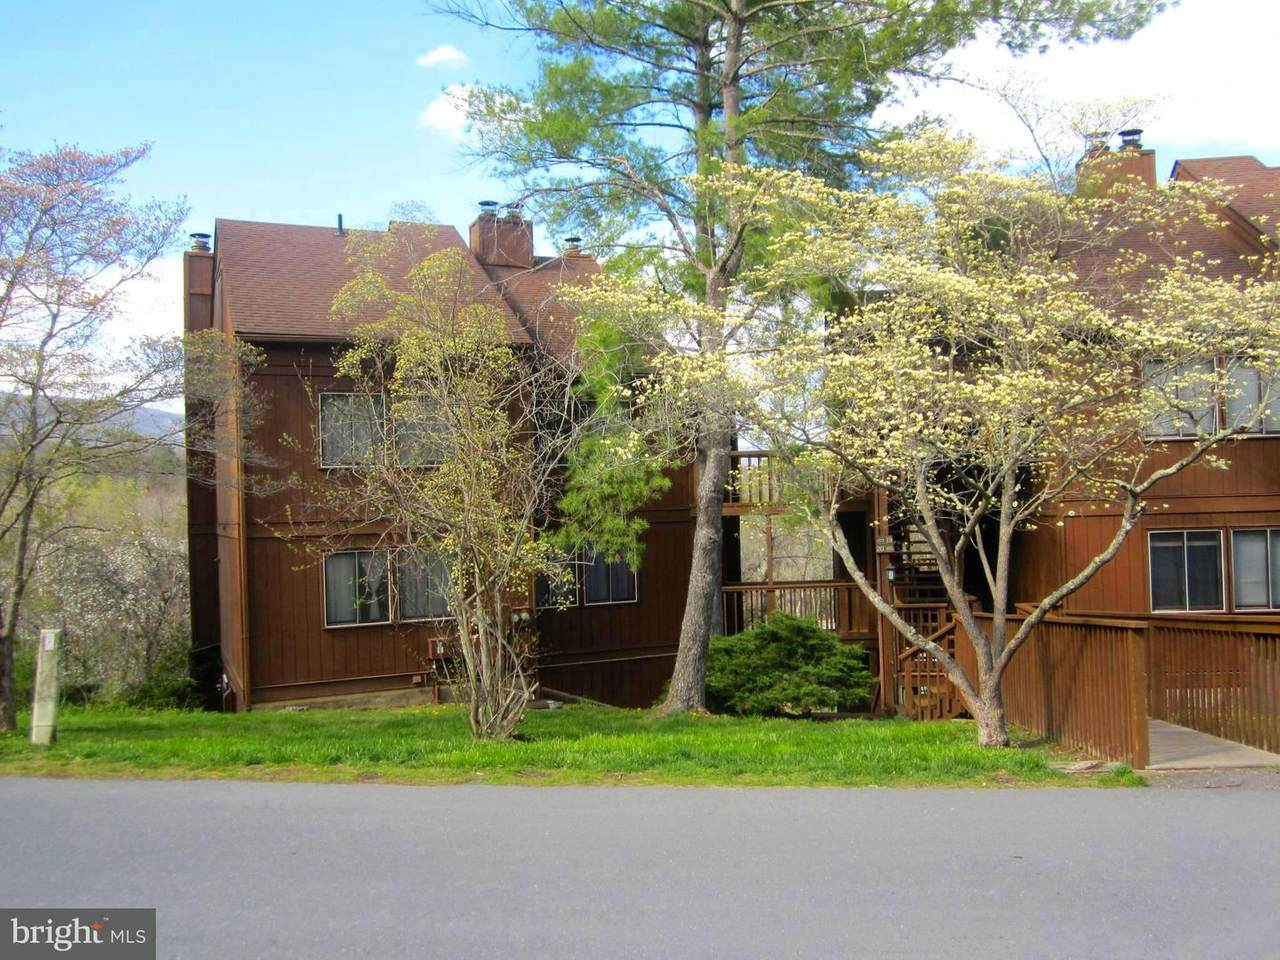 154 The Hill Rd, - Photo 1